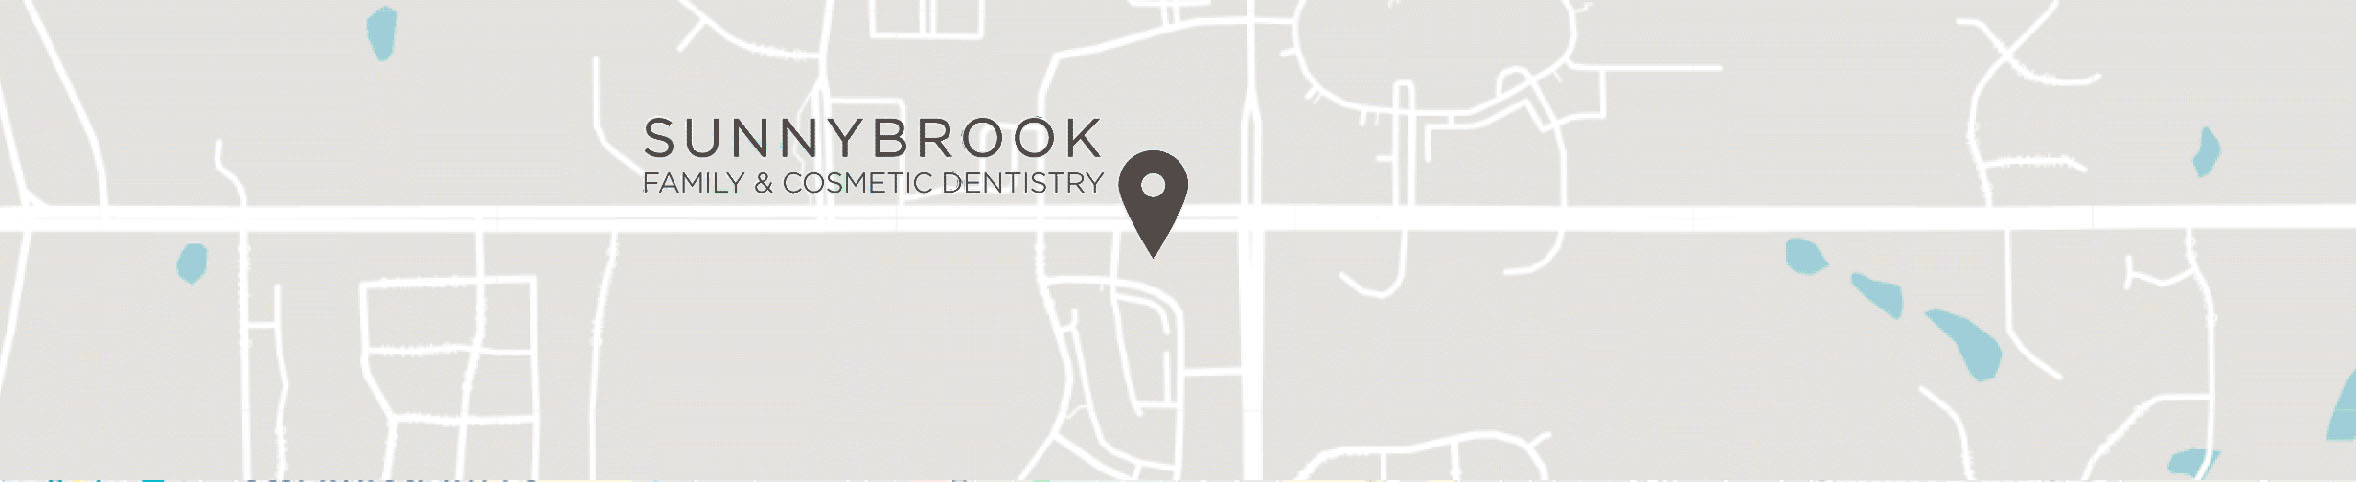 Sunnybrook Dental Map